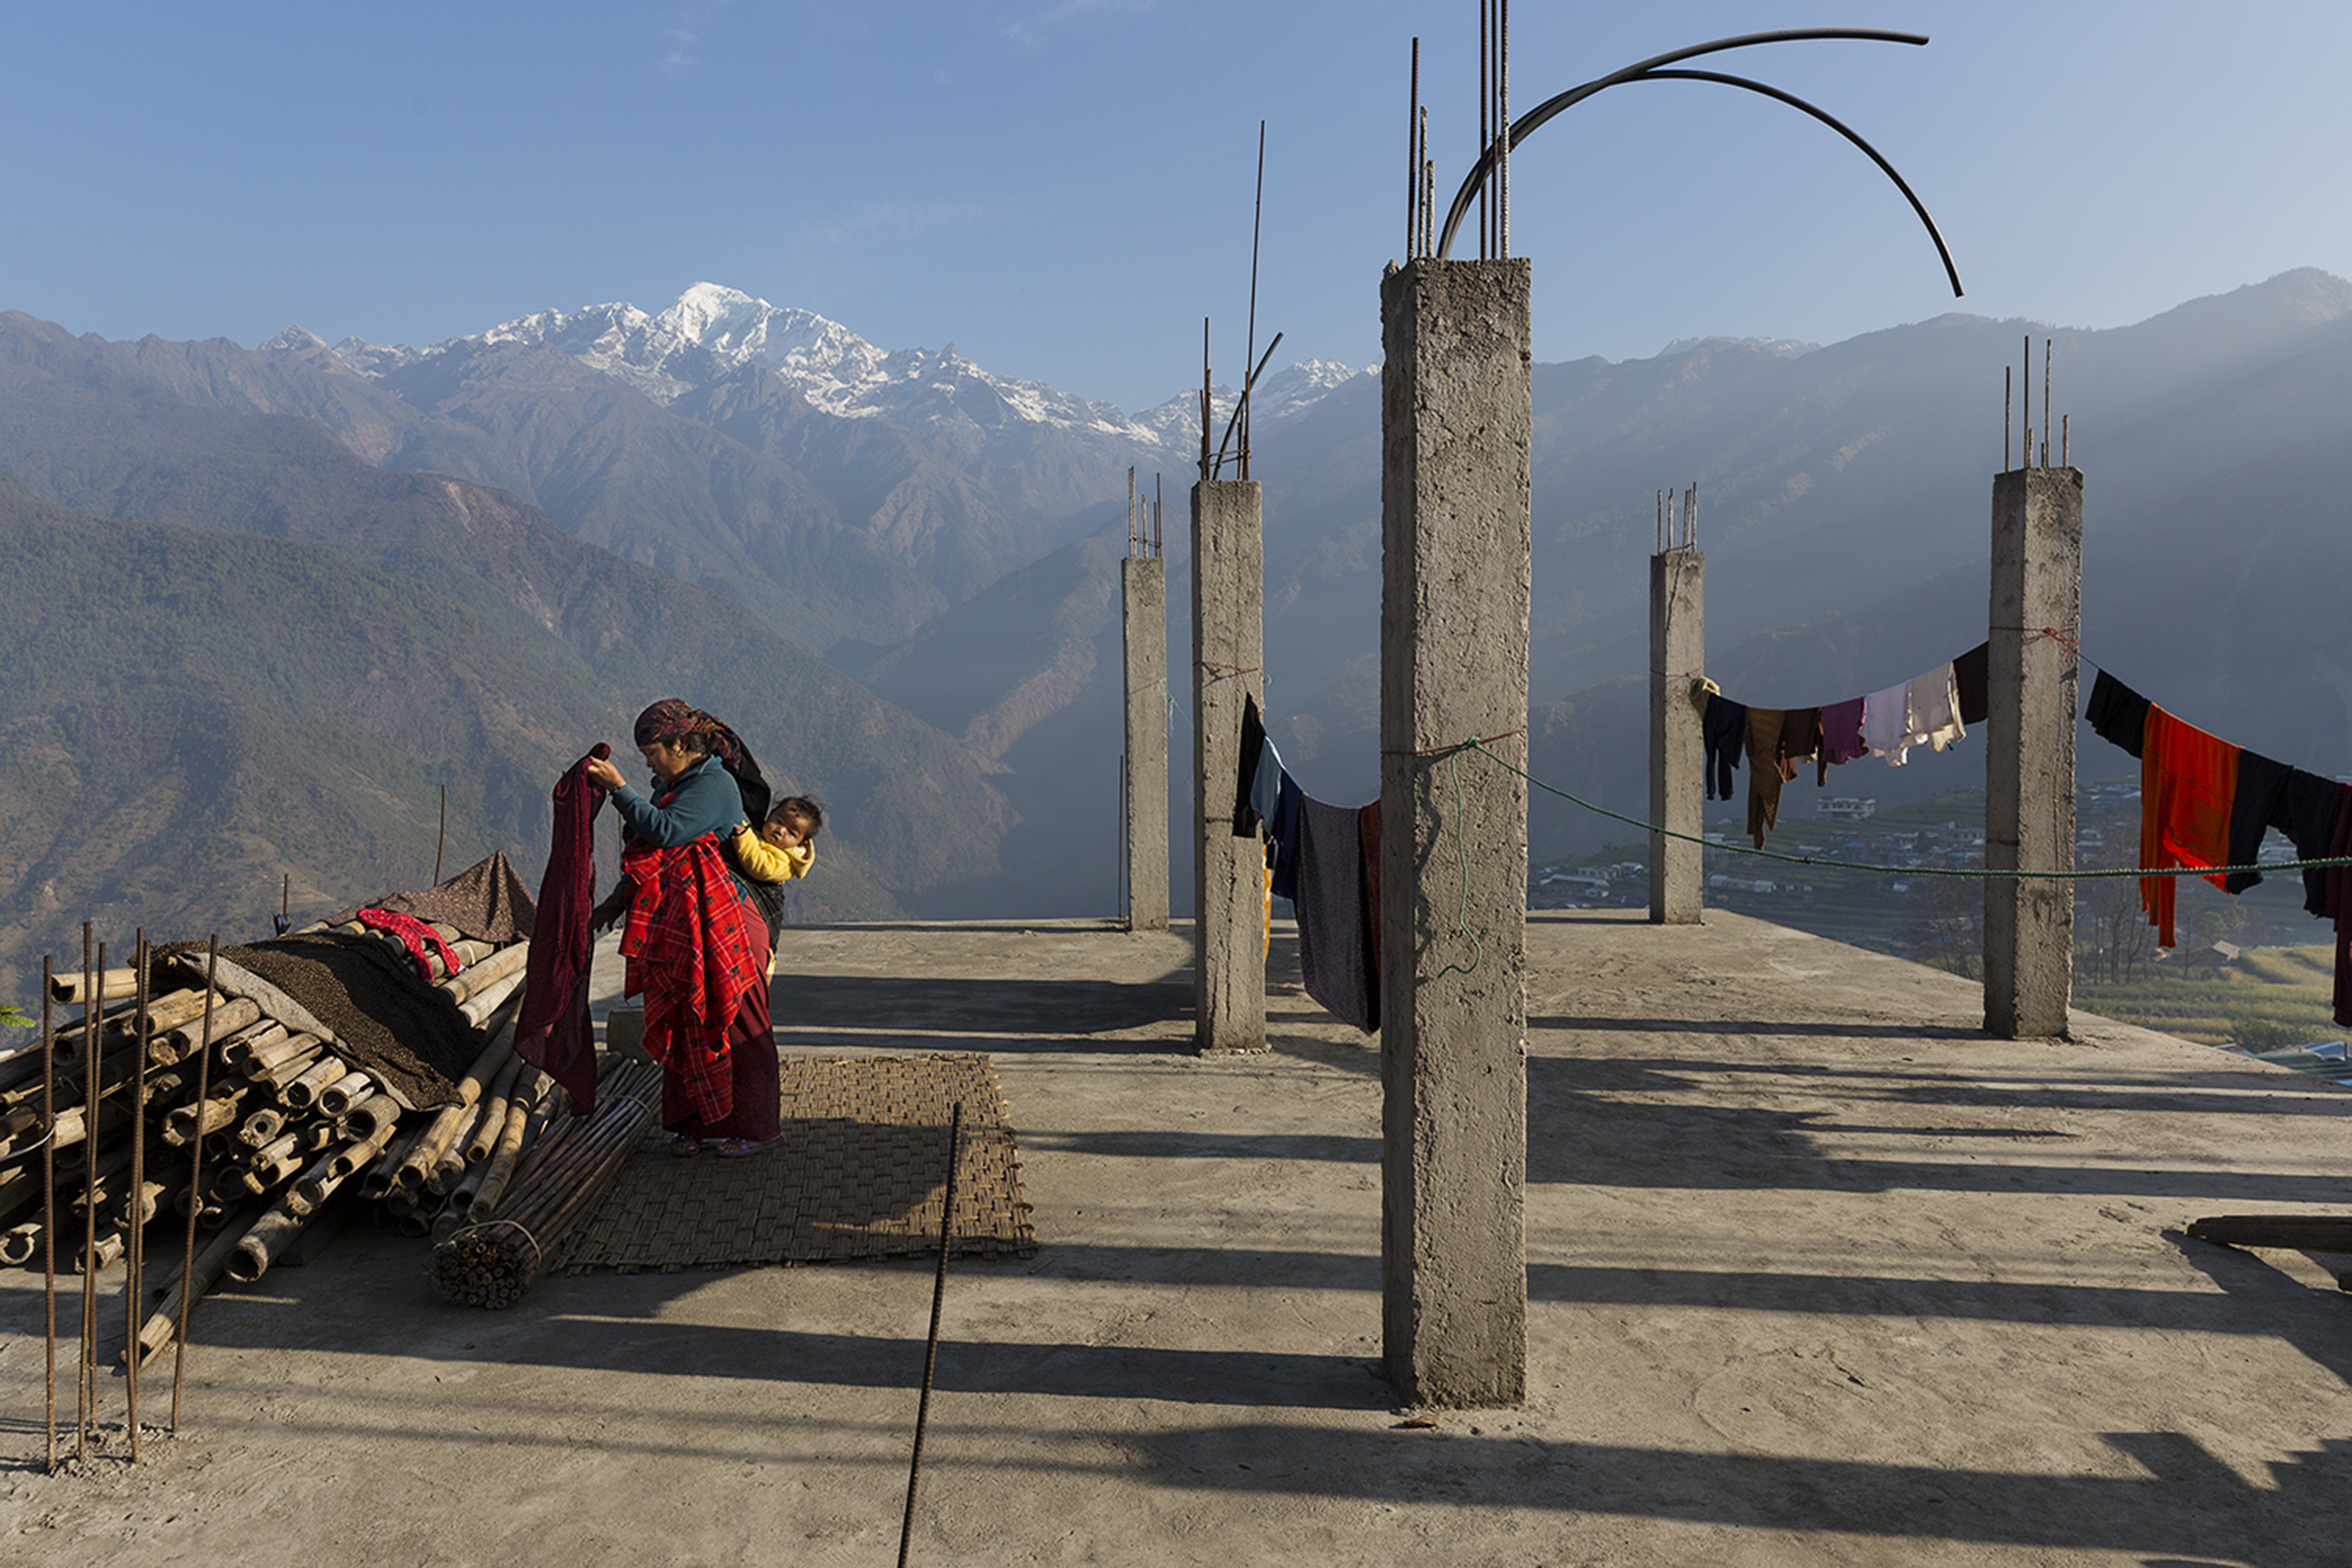 A woman hangs laundry with the Buddha Himal mountain behind her in the Himalyan village of Barpak, in Gorkha district, Nepal. Though international donors stepped up to provide aid in the aftermath of the 2015 quakes, money for rebuilding homes has yet to reach victims. April 6, 2016.